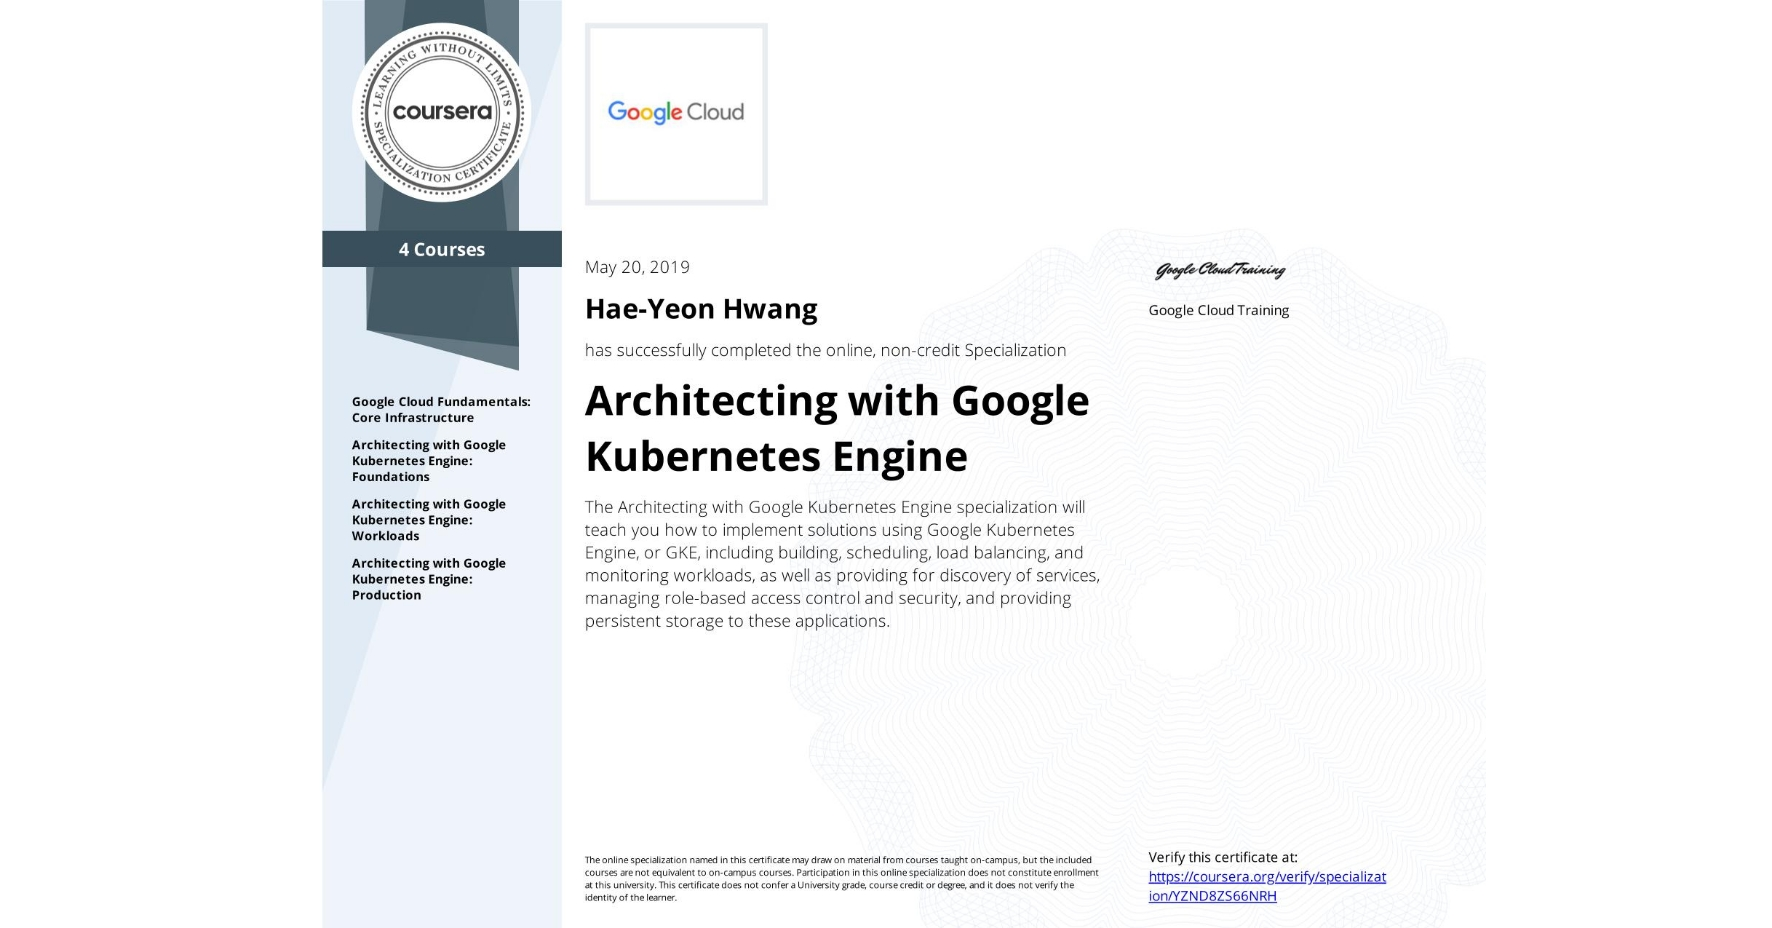 View certificate for Hae-Yeon Hwang, Architecting with Google Kubernetes Engine, offered through Coursera. The Architecting with Google Kubernetes Engine specialization will teach you how to implement solutions using Google Kubernetes Engine, or GKE, including building, scheduling, load balancing, and monitoring workloads, as well as providing for discovery of services, managing role-based access control and security, and providing persistent storage to these applications.